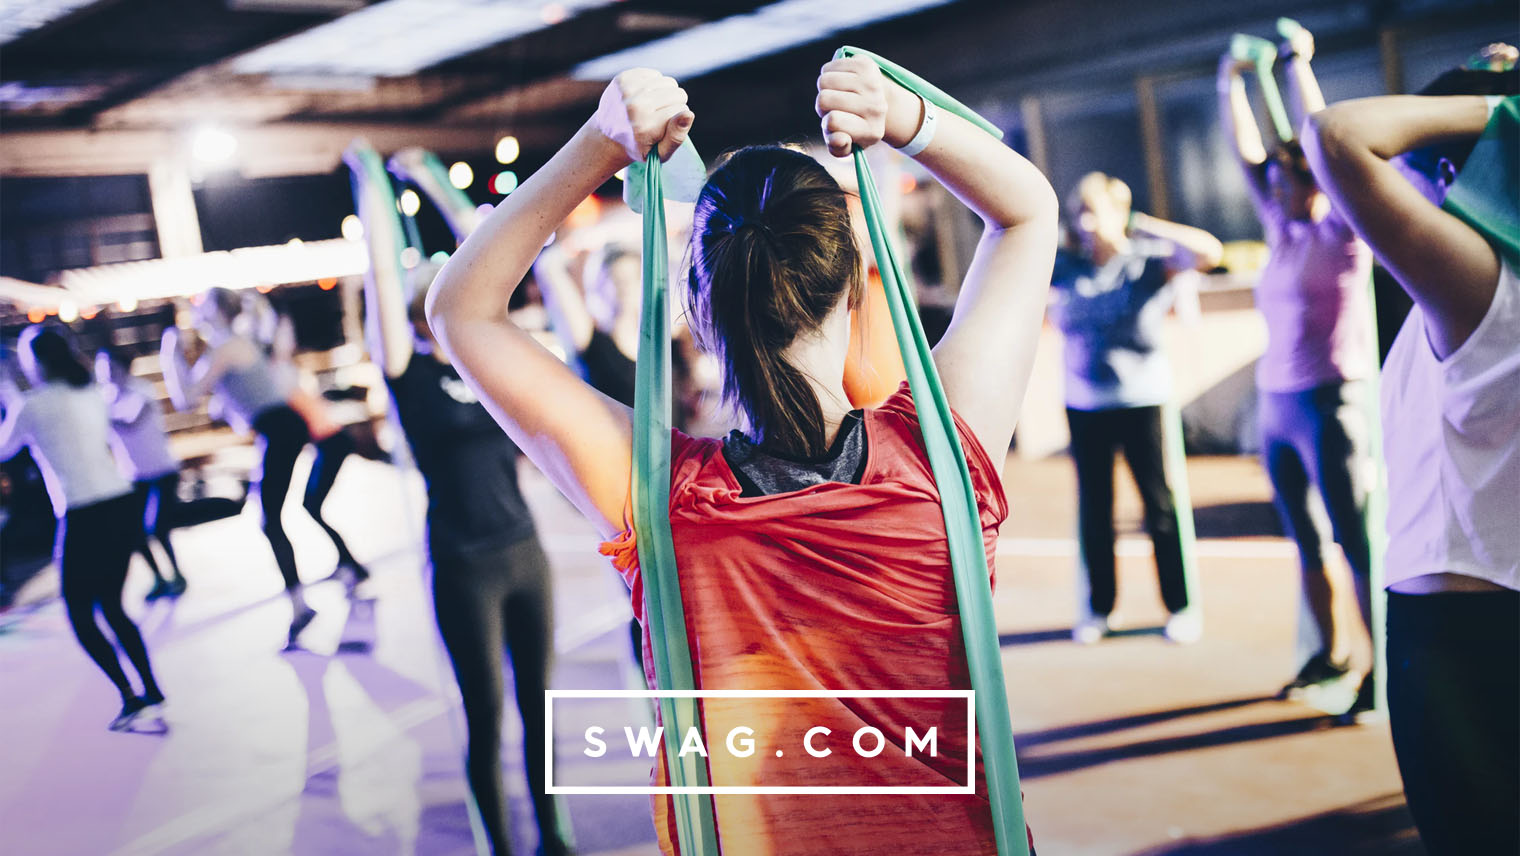 Swag Ideas for Gyms & Fitness